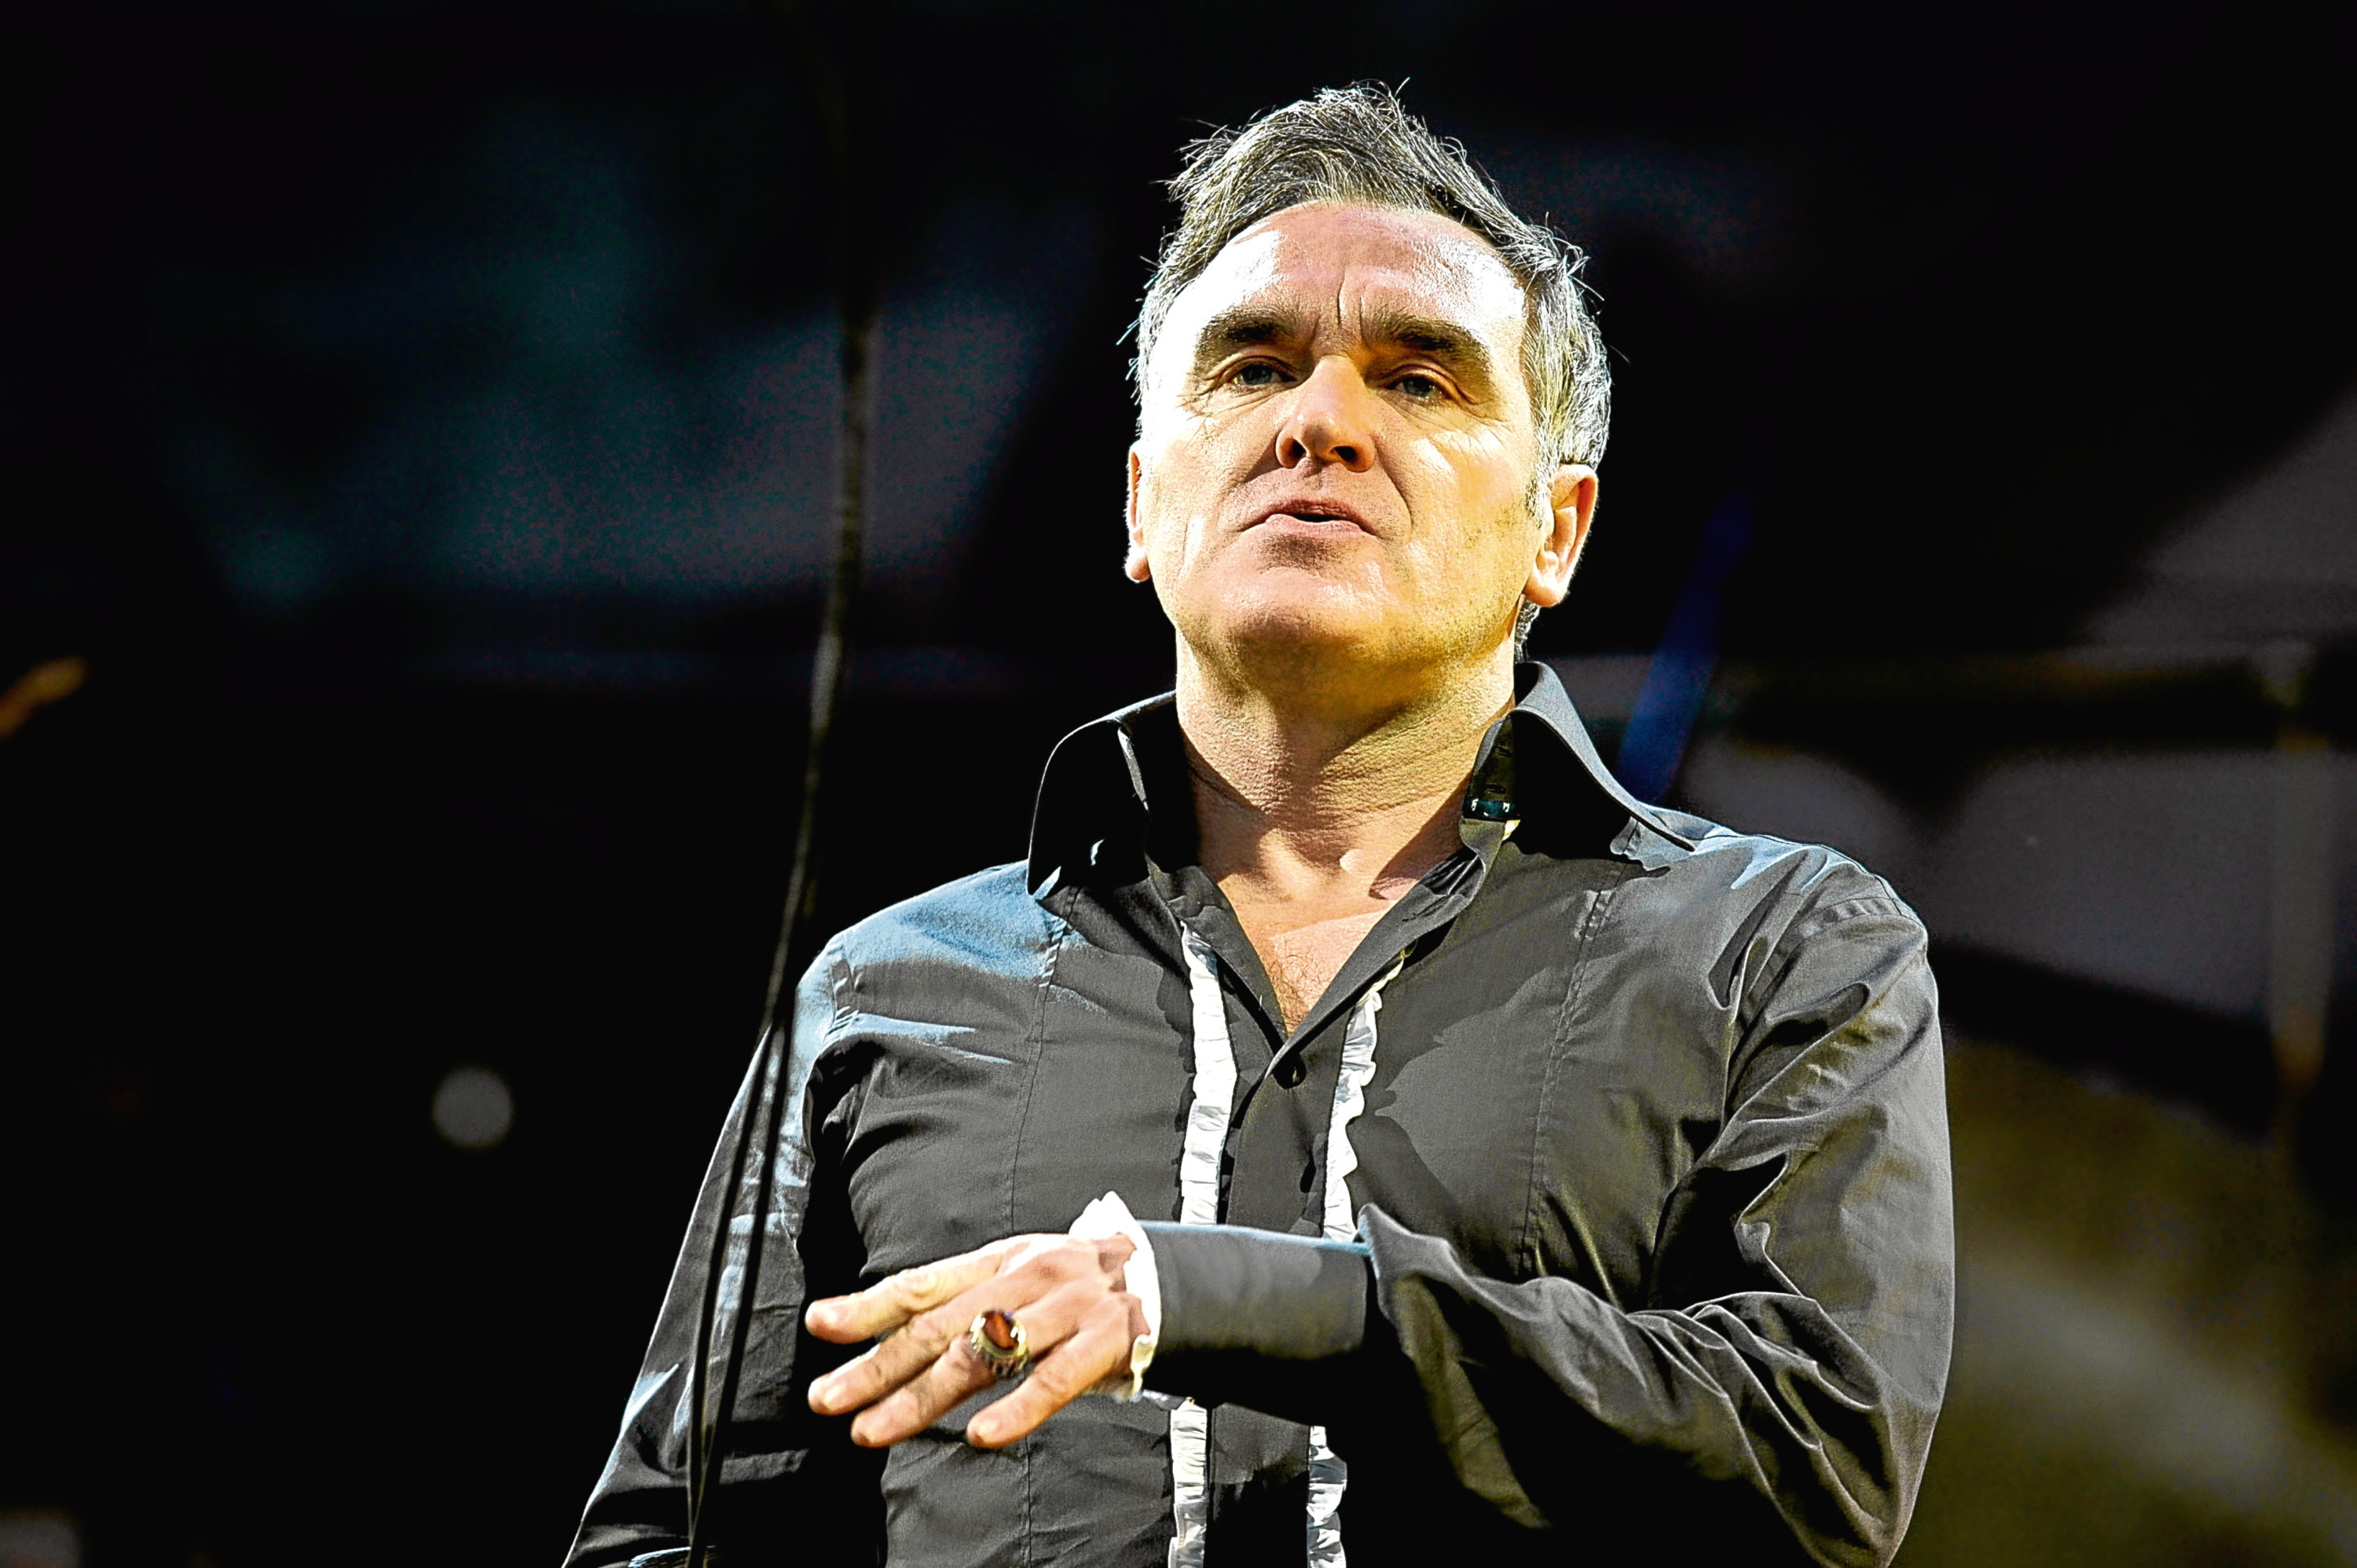 Morrissey is playing the AECC tomorrow.